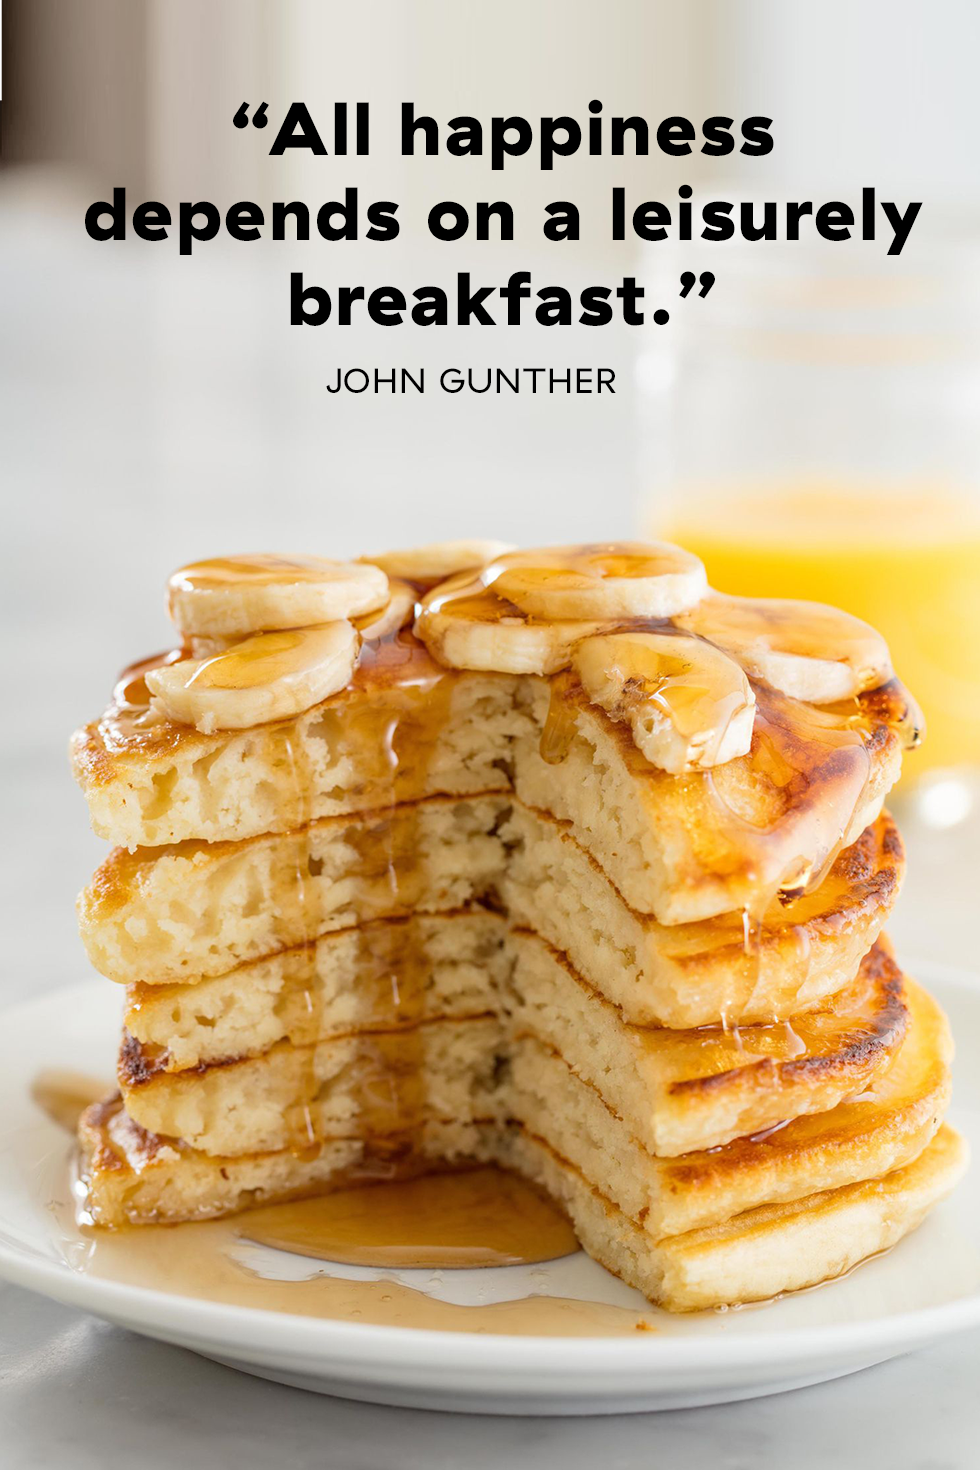 20 Of The Greatest Quotes Anyone Has Ever Said About Food